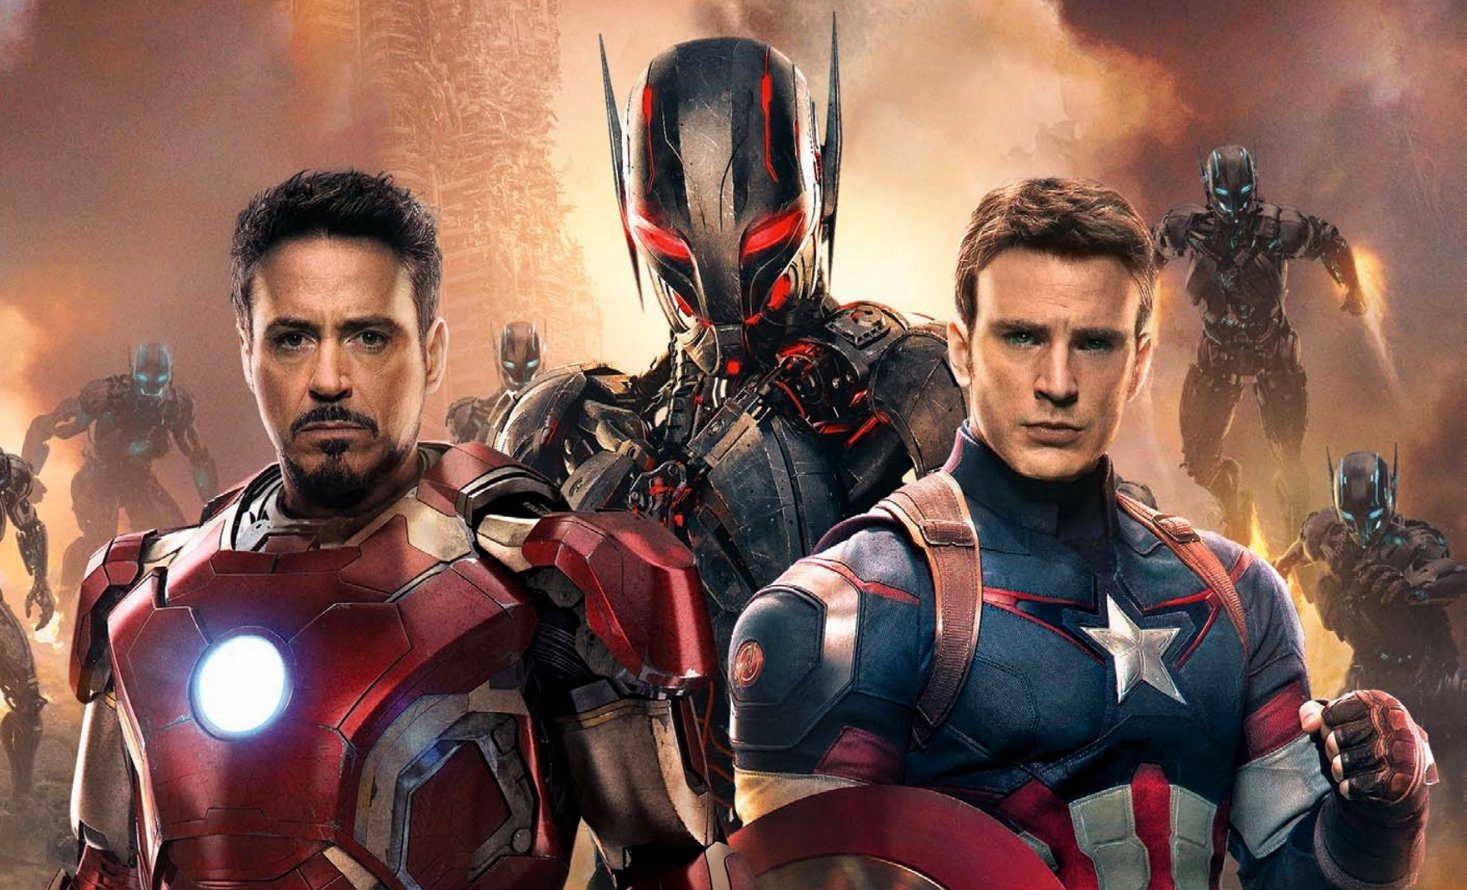 Could Avengers 3 follow the Civil War storyline 1467x890